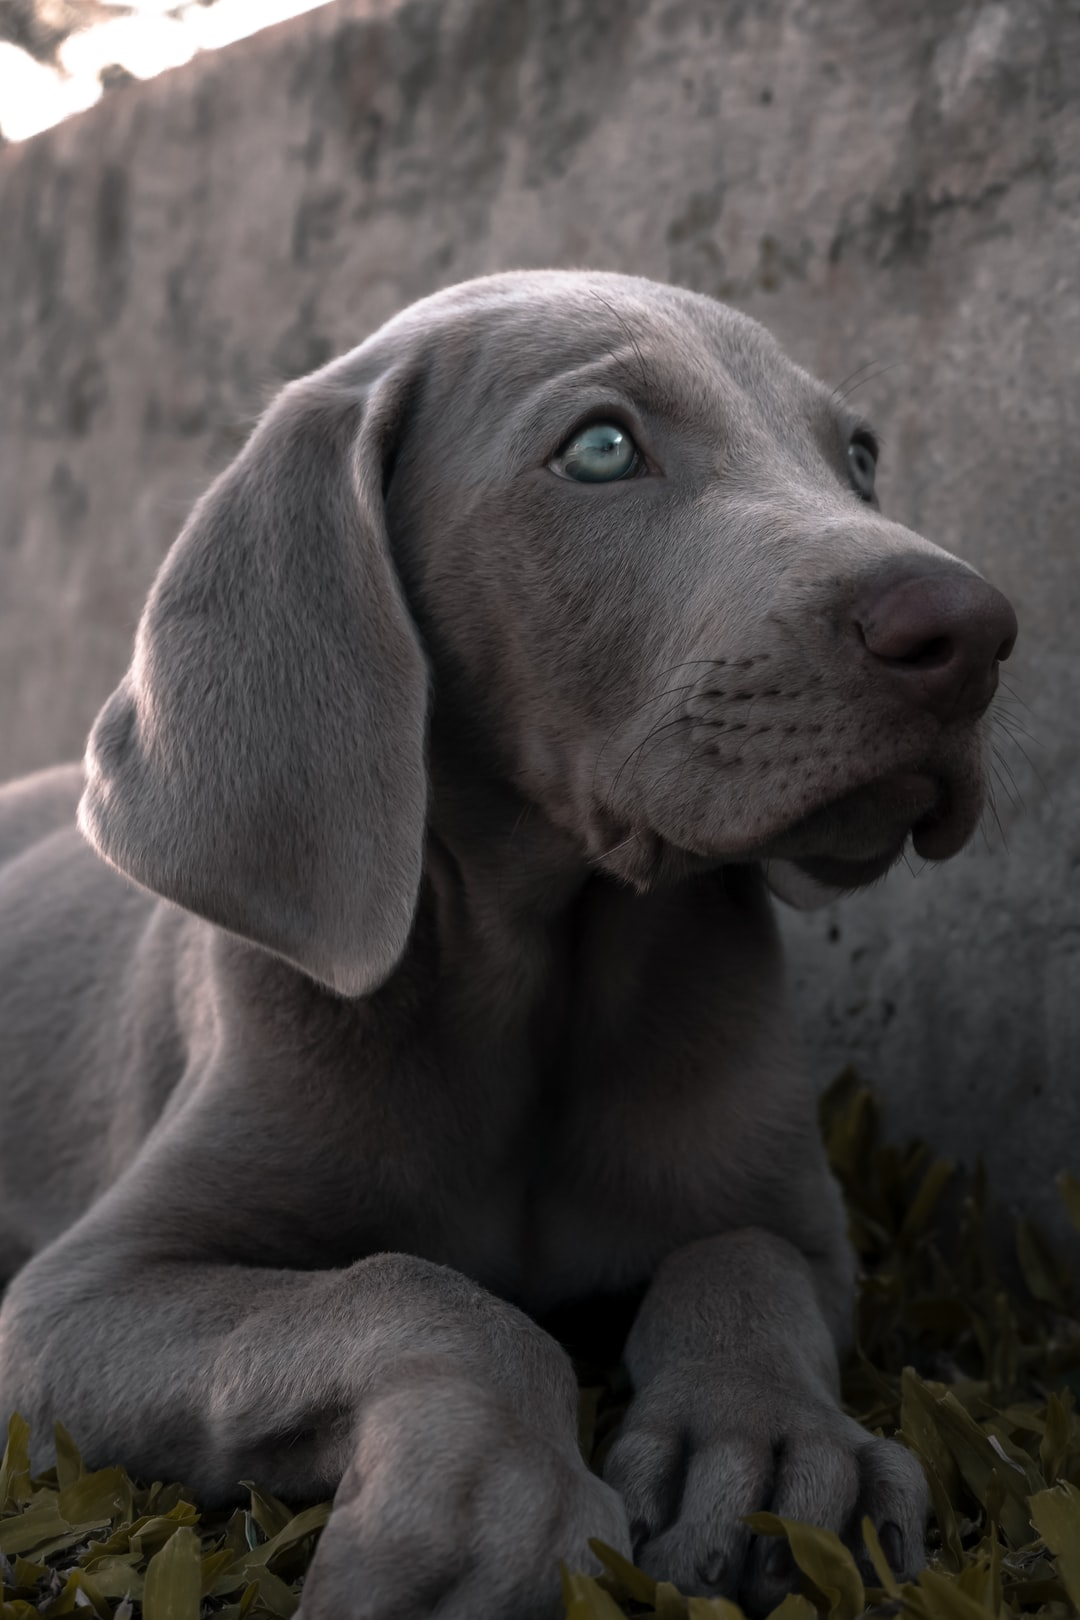 Puppy Weimaraner. If you wanna help me name me in the credits or follow me in Instagram @ken_apf